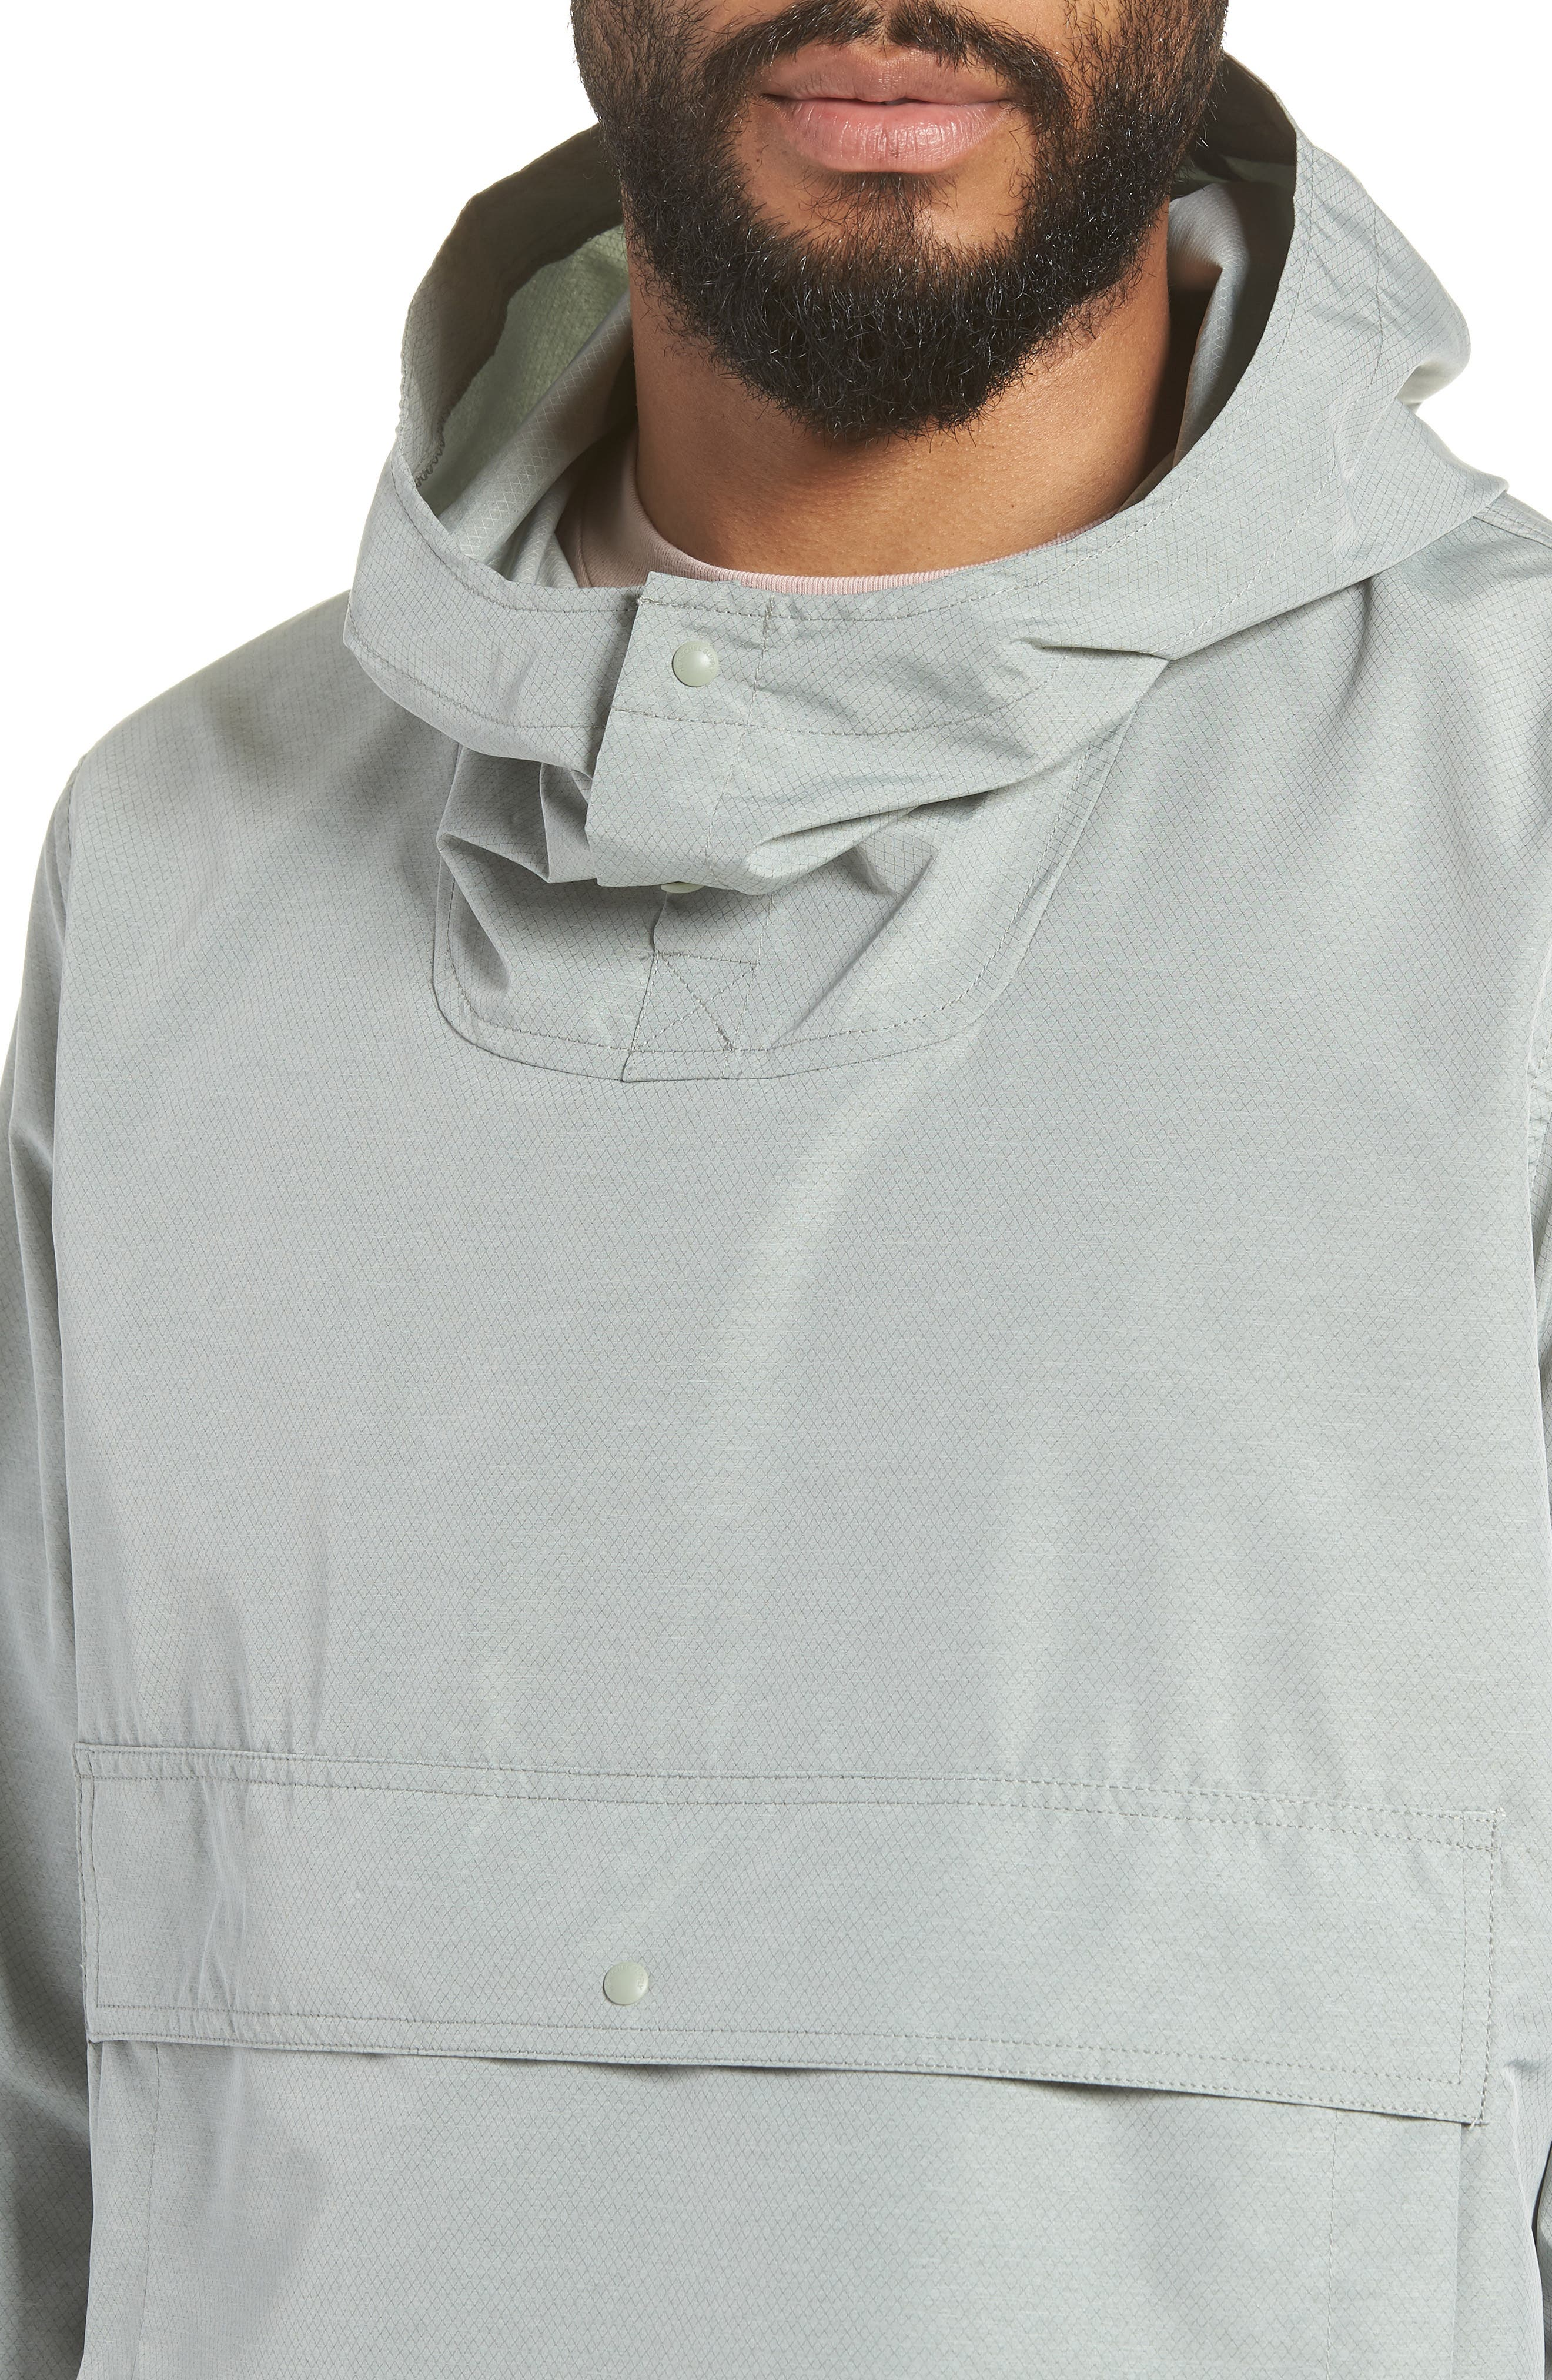 Voyage Anorak,                             Alternate thumbnail 4, color,                             Shadow Crosshatch / Black